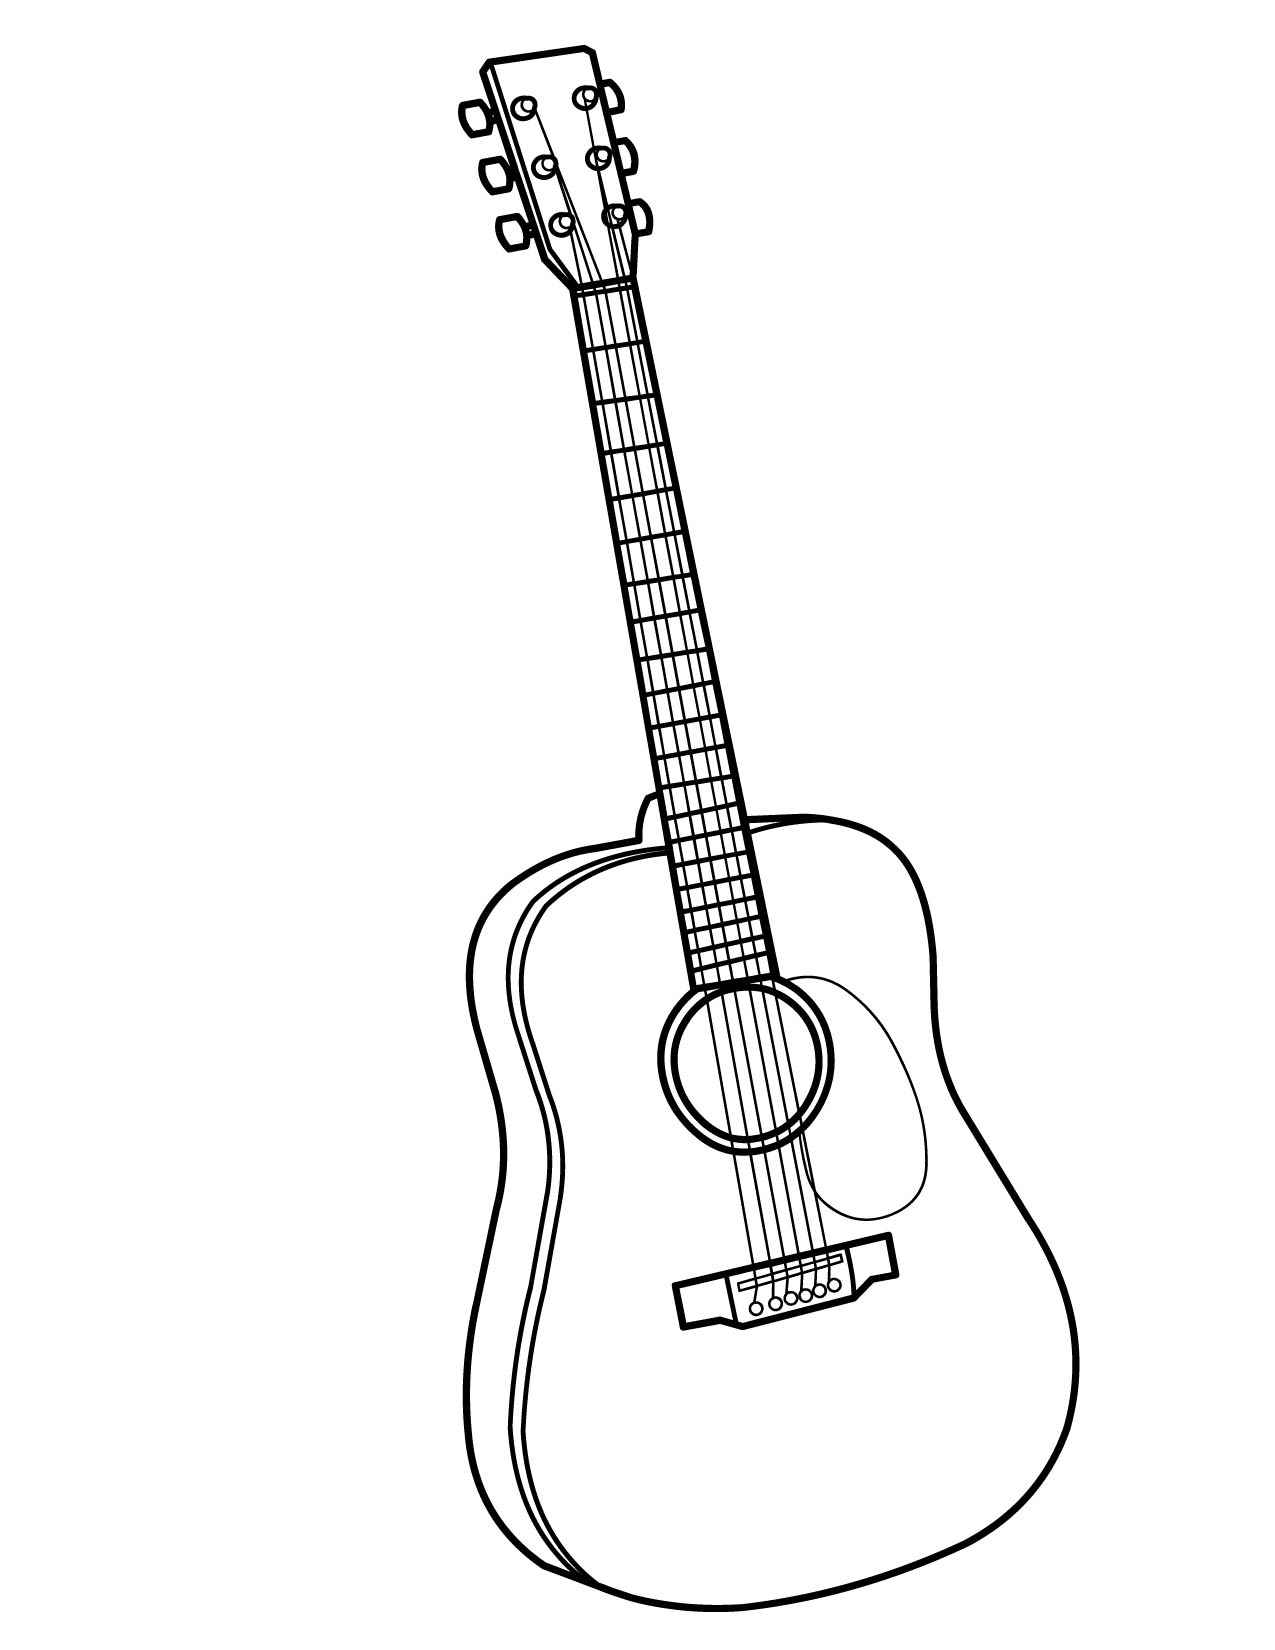 1275x1650 Drawn Guitar Colouring Page Pencil And In Color Gui On R Of A